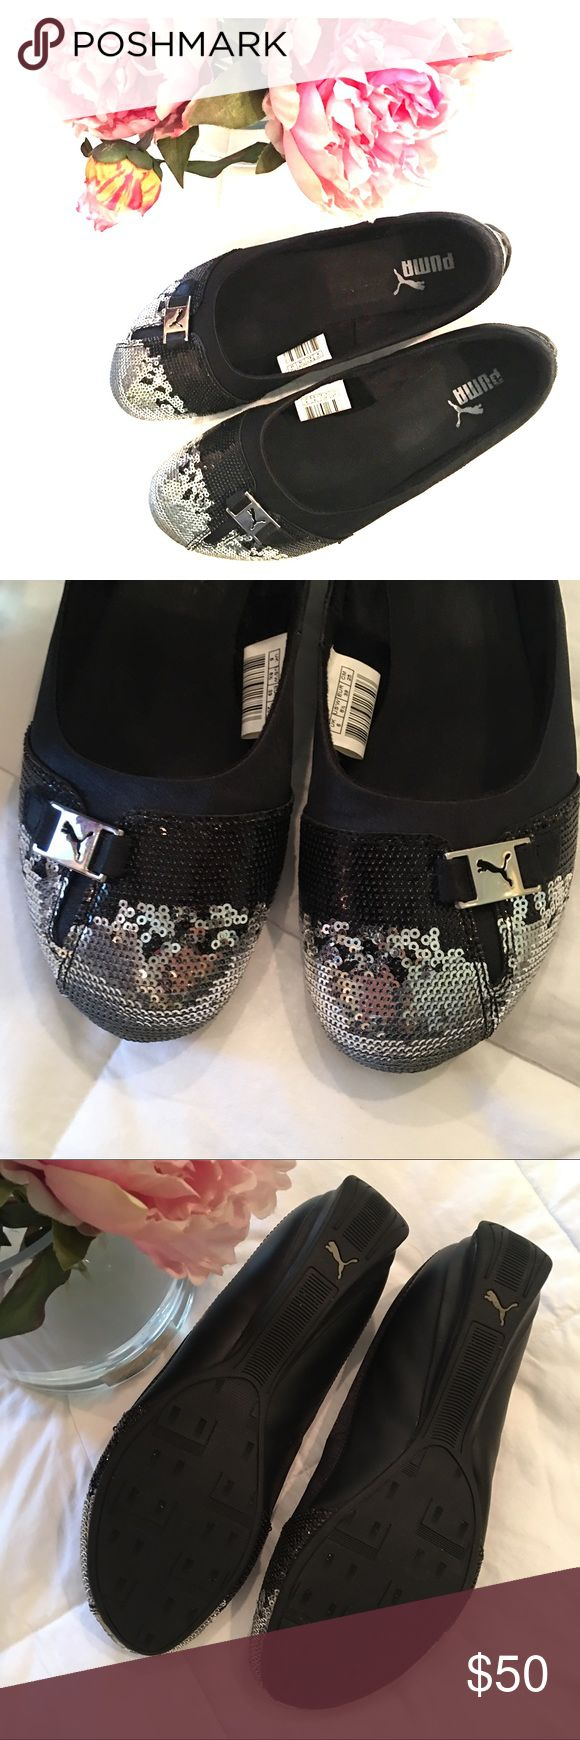 Puma Sequins Ballerina Flats size 8.5 NWOT Sequins toe-cap Puma ballerinas in excellent condition. They're a size 8.5 and are barely used. I love the glitz they add to a simple t-shirt and jeans outfit! 💗✨💗✨ Happy Poshing ! Puma Shoes Flats & Loafers